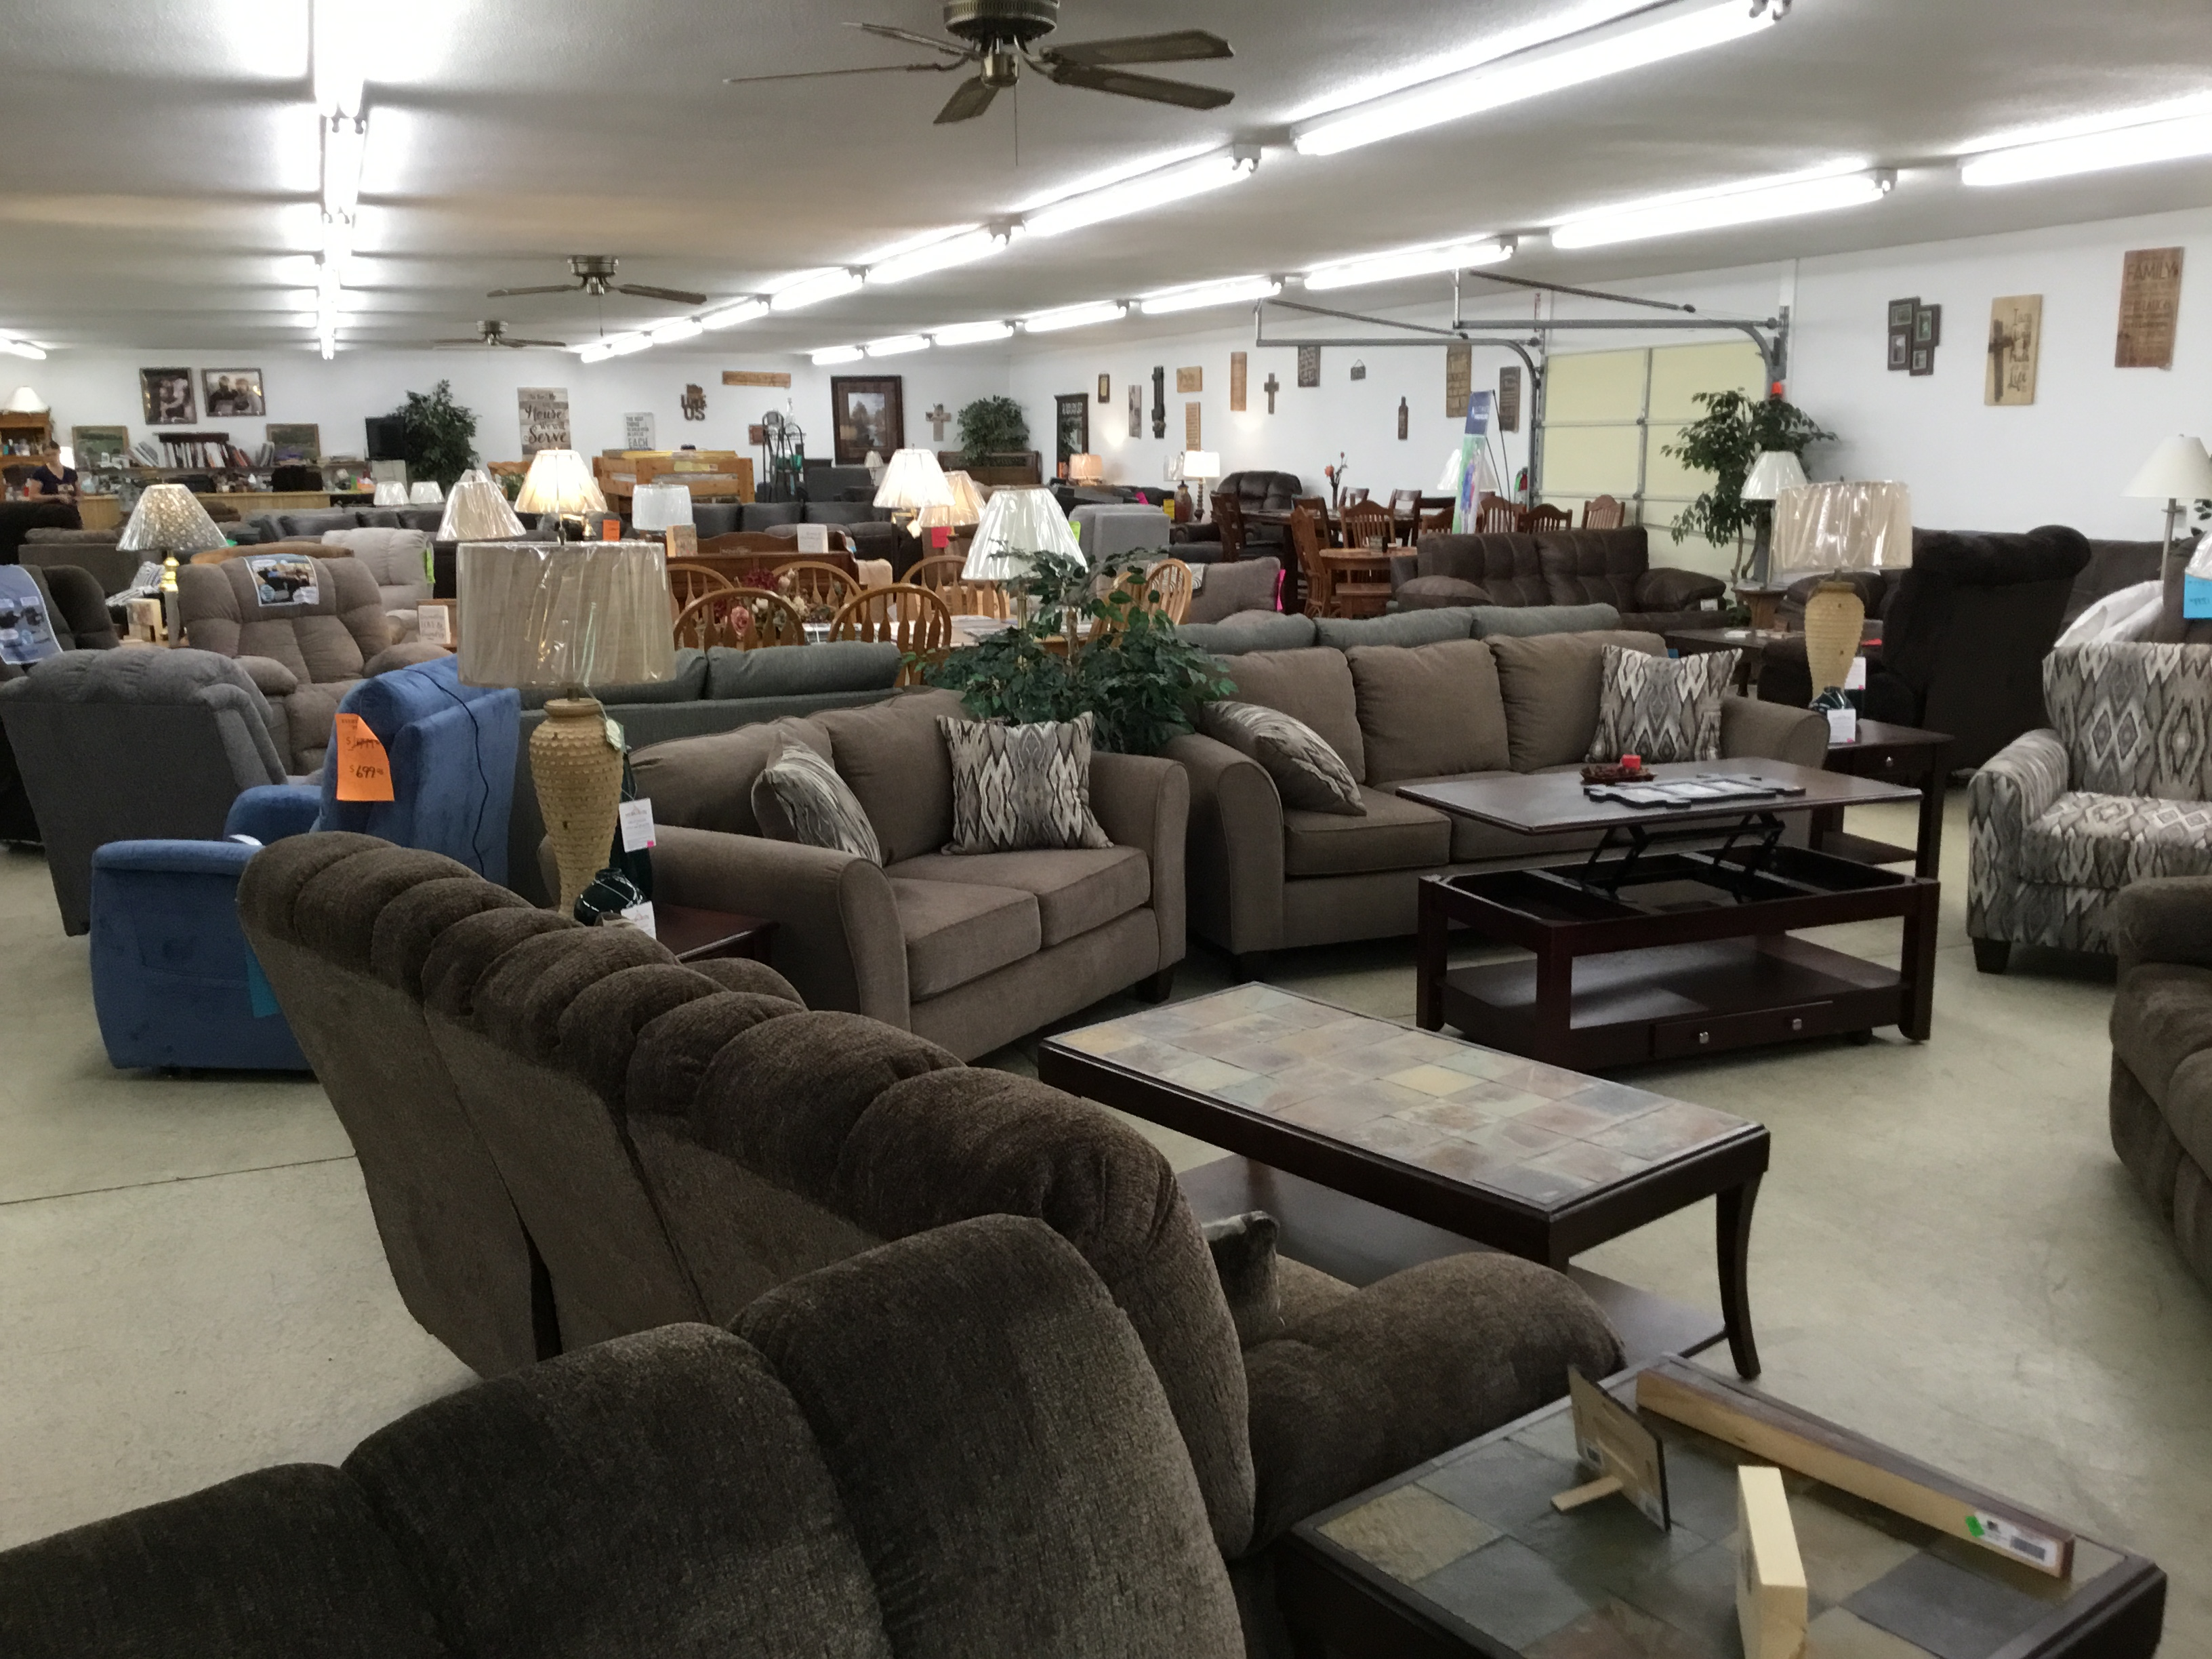 Save An Additional 5 20% Off The Already 50% Off Manufacturers Suggested  Retail This Week At Freedom Furniture.